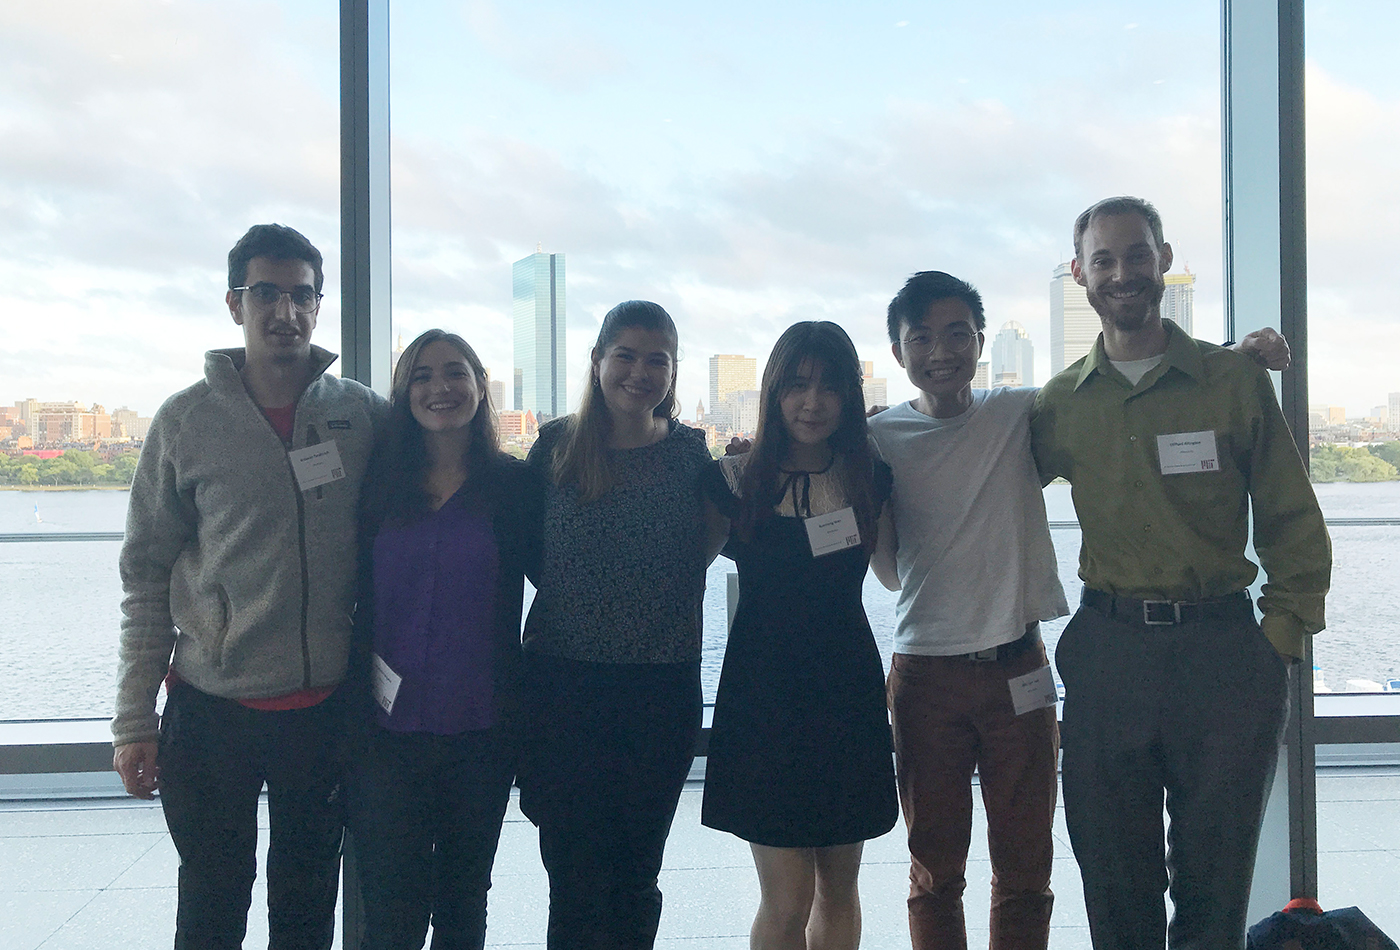 A group of students stands in front of a window featuring the Boston skyline at a reception.